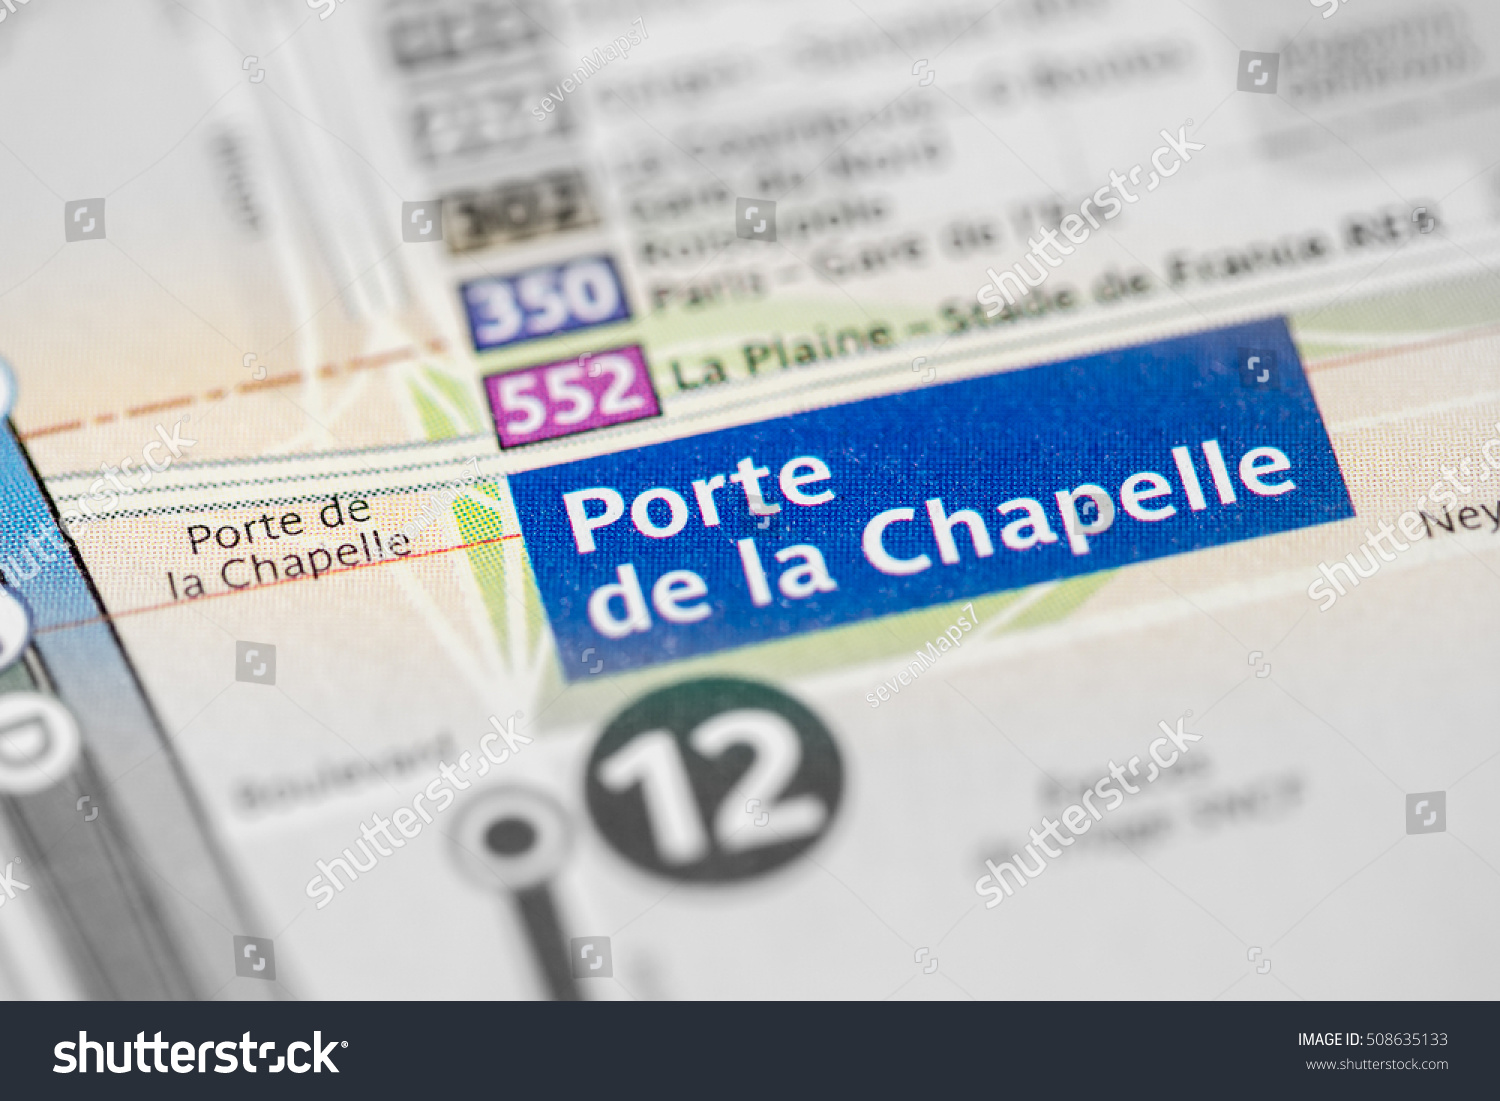 Porte de la chapelle station 12th stock photo 508635133 for Porte de la chapelle